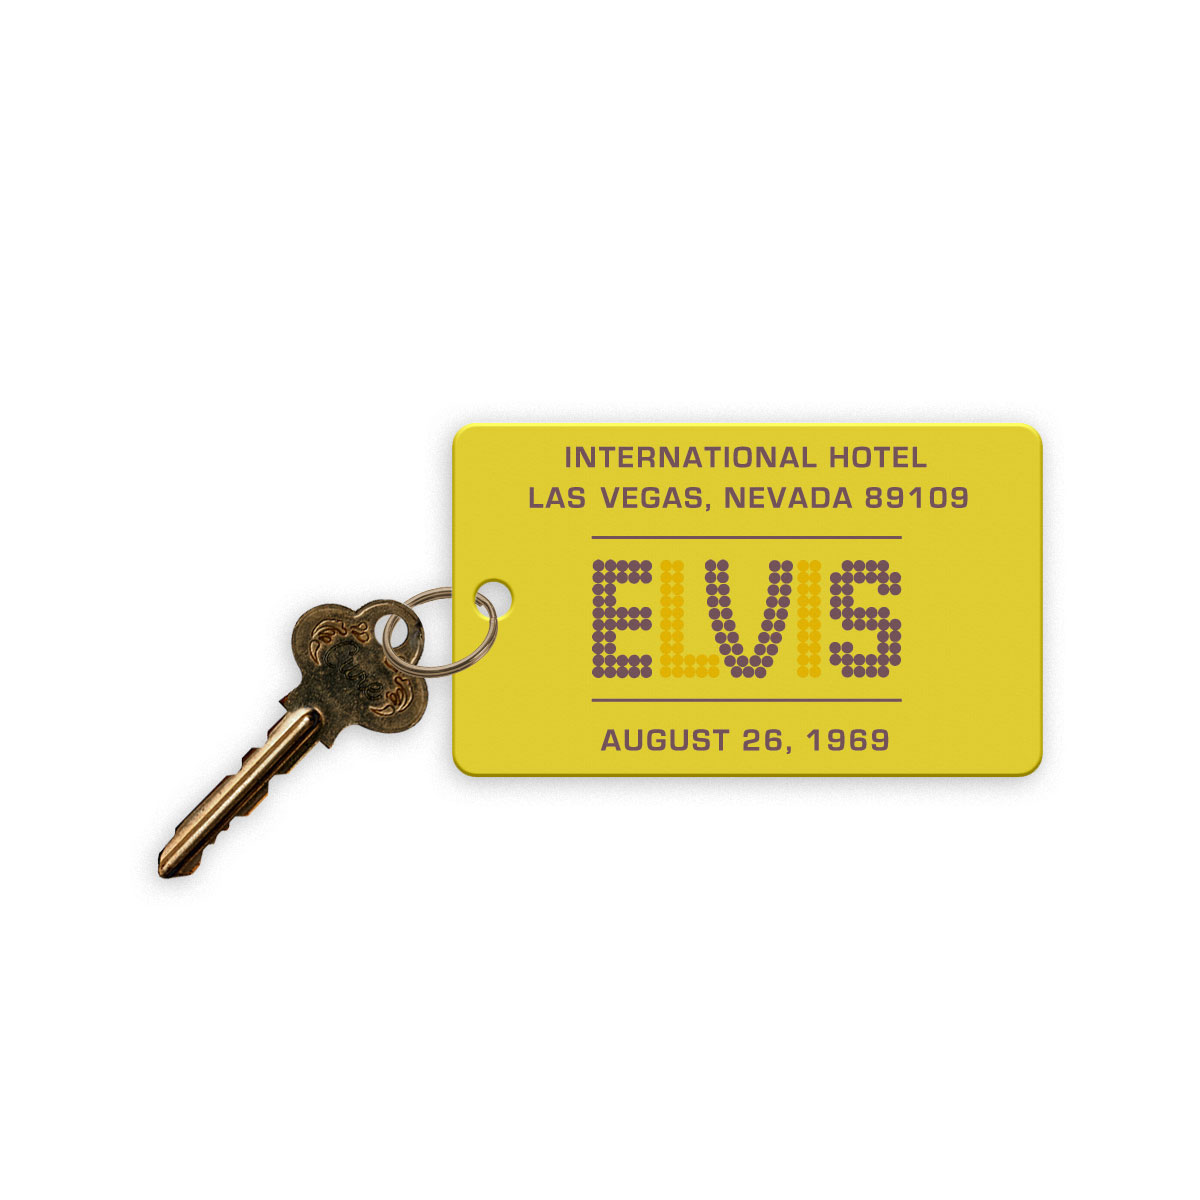 Elvis LIVE 1969 International Hotel Replica Hotel Room Key